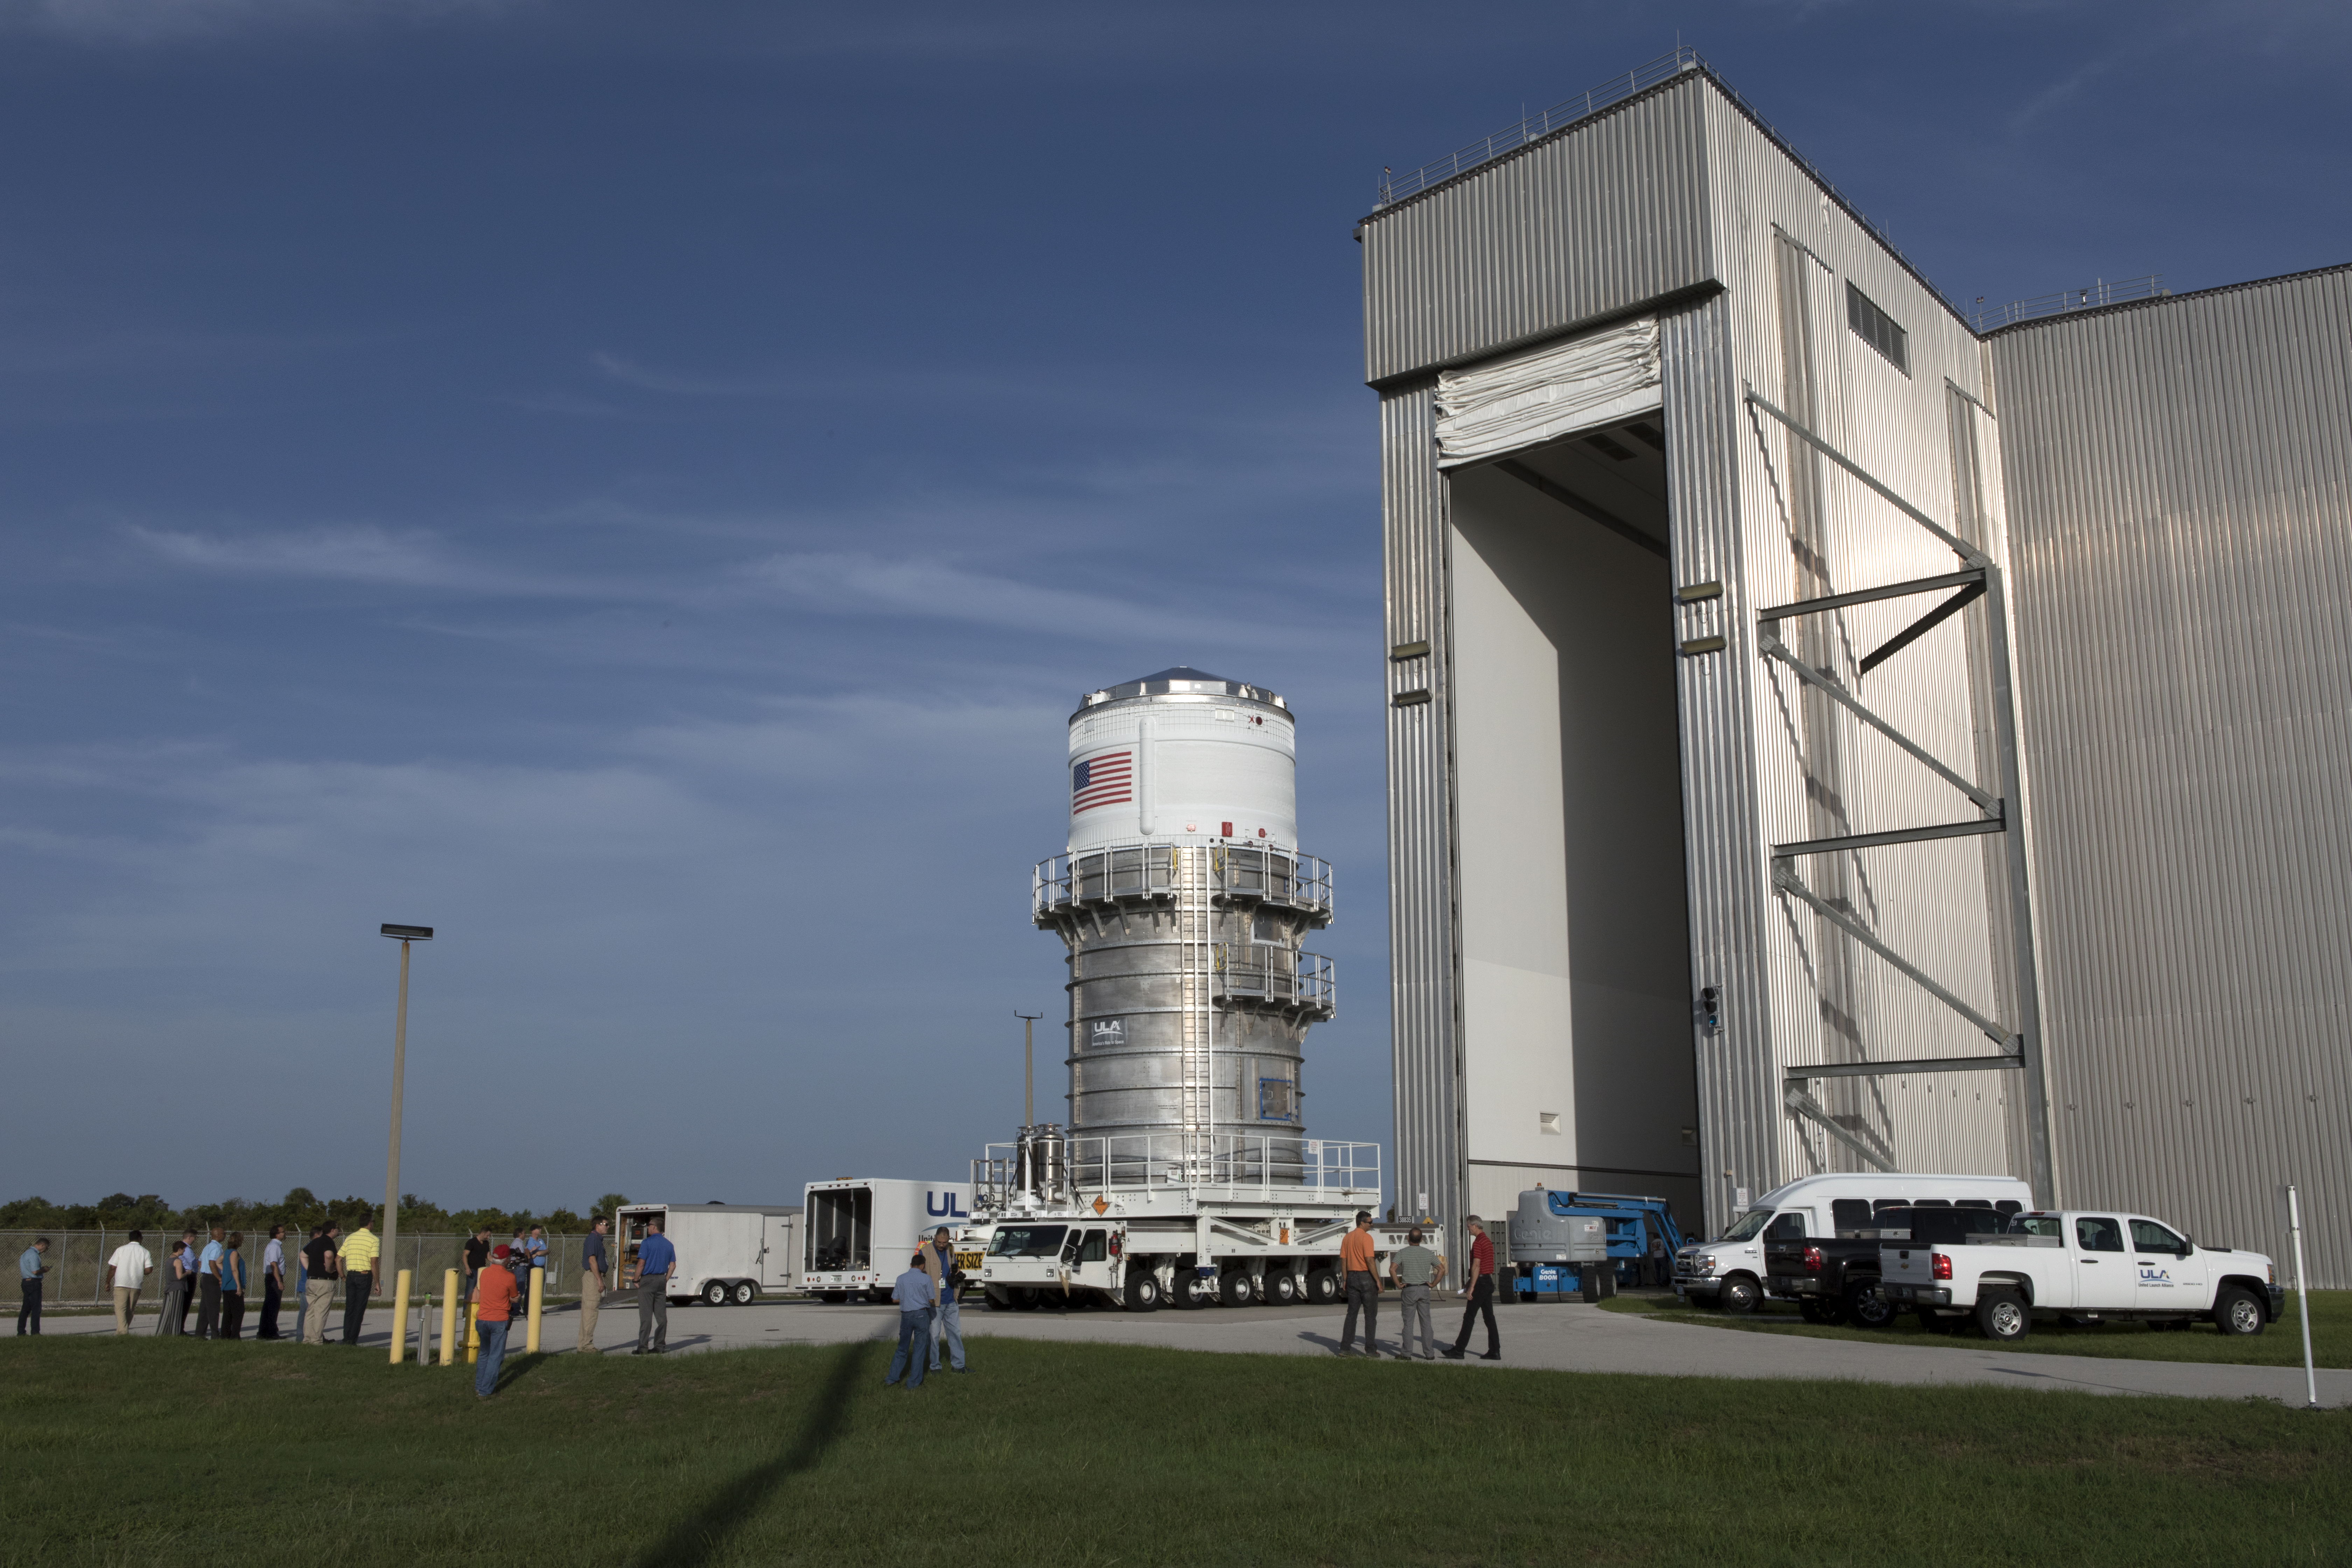 nasa s space launch system booster passes major ground test nasa interim cryogenic propulsion stage moves to space station processing facility